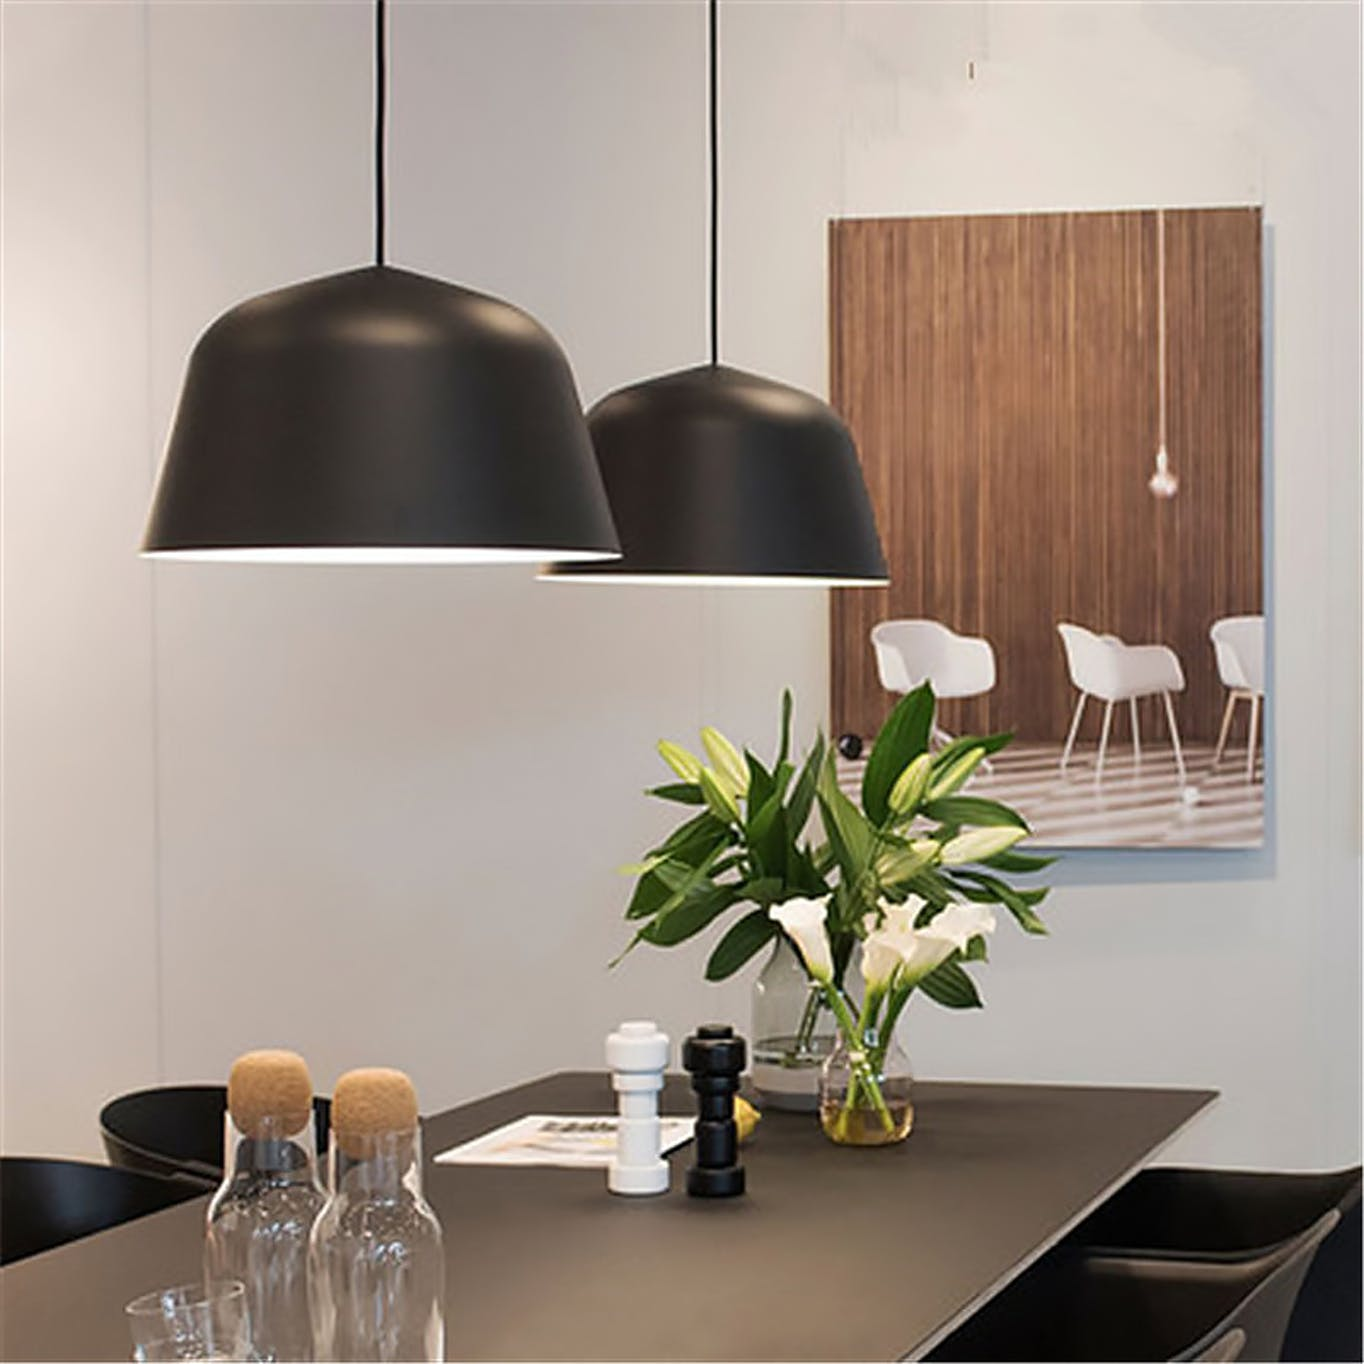 Muuto ambit pendant lamp in black, hanging above dining table